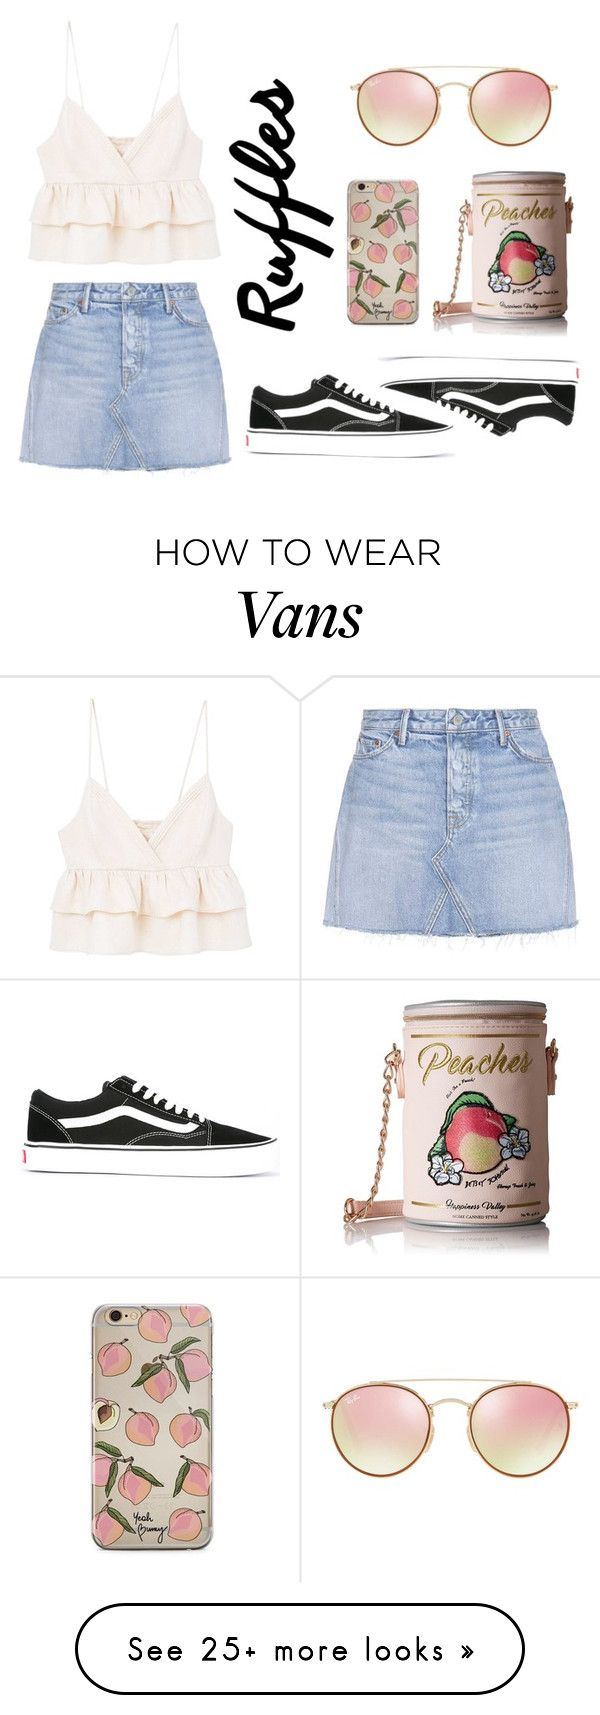 """Untitled #404"" by fashioncoolture on Polyvore featuring MANGO, GRLFRND, Vans, Betsey Johnson and Ray-Ban"